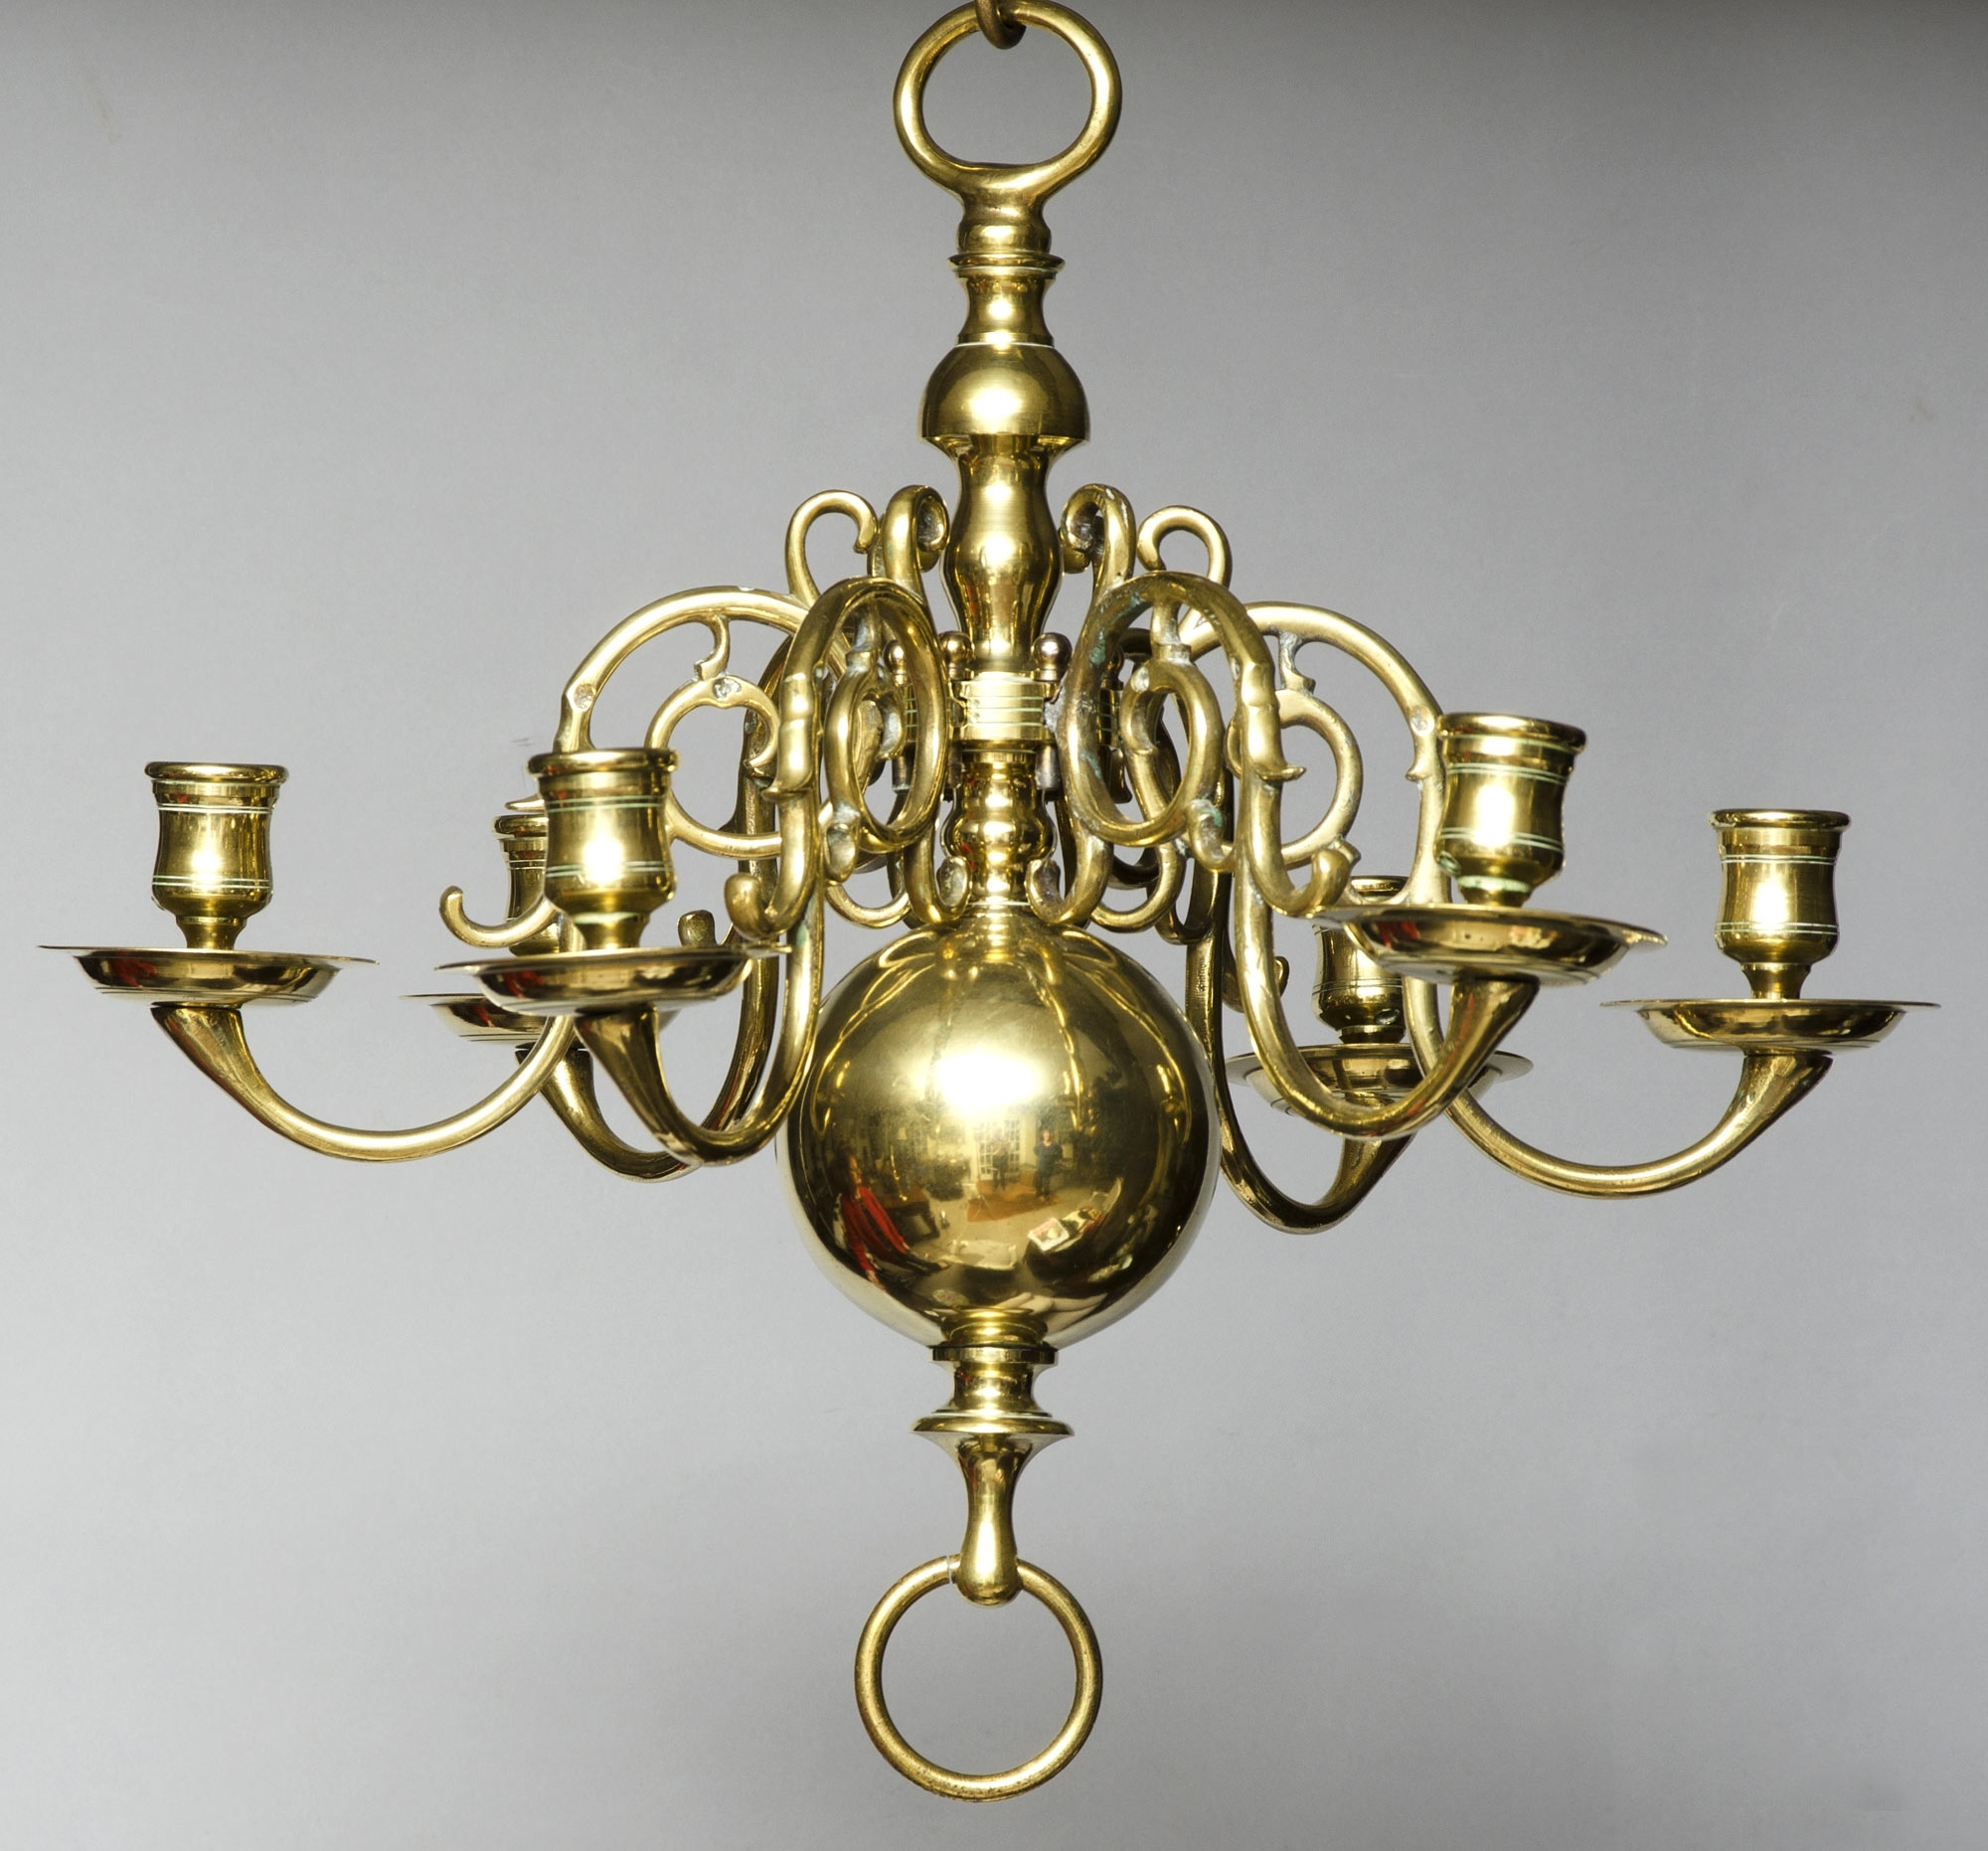 Product » Small Dutch Brass Chandelier With Recent Old Brass Chandelier (View 17 of 20)